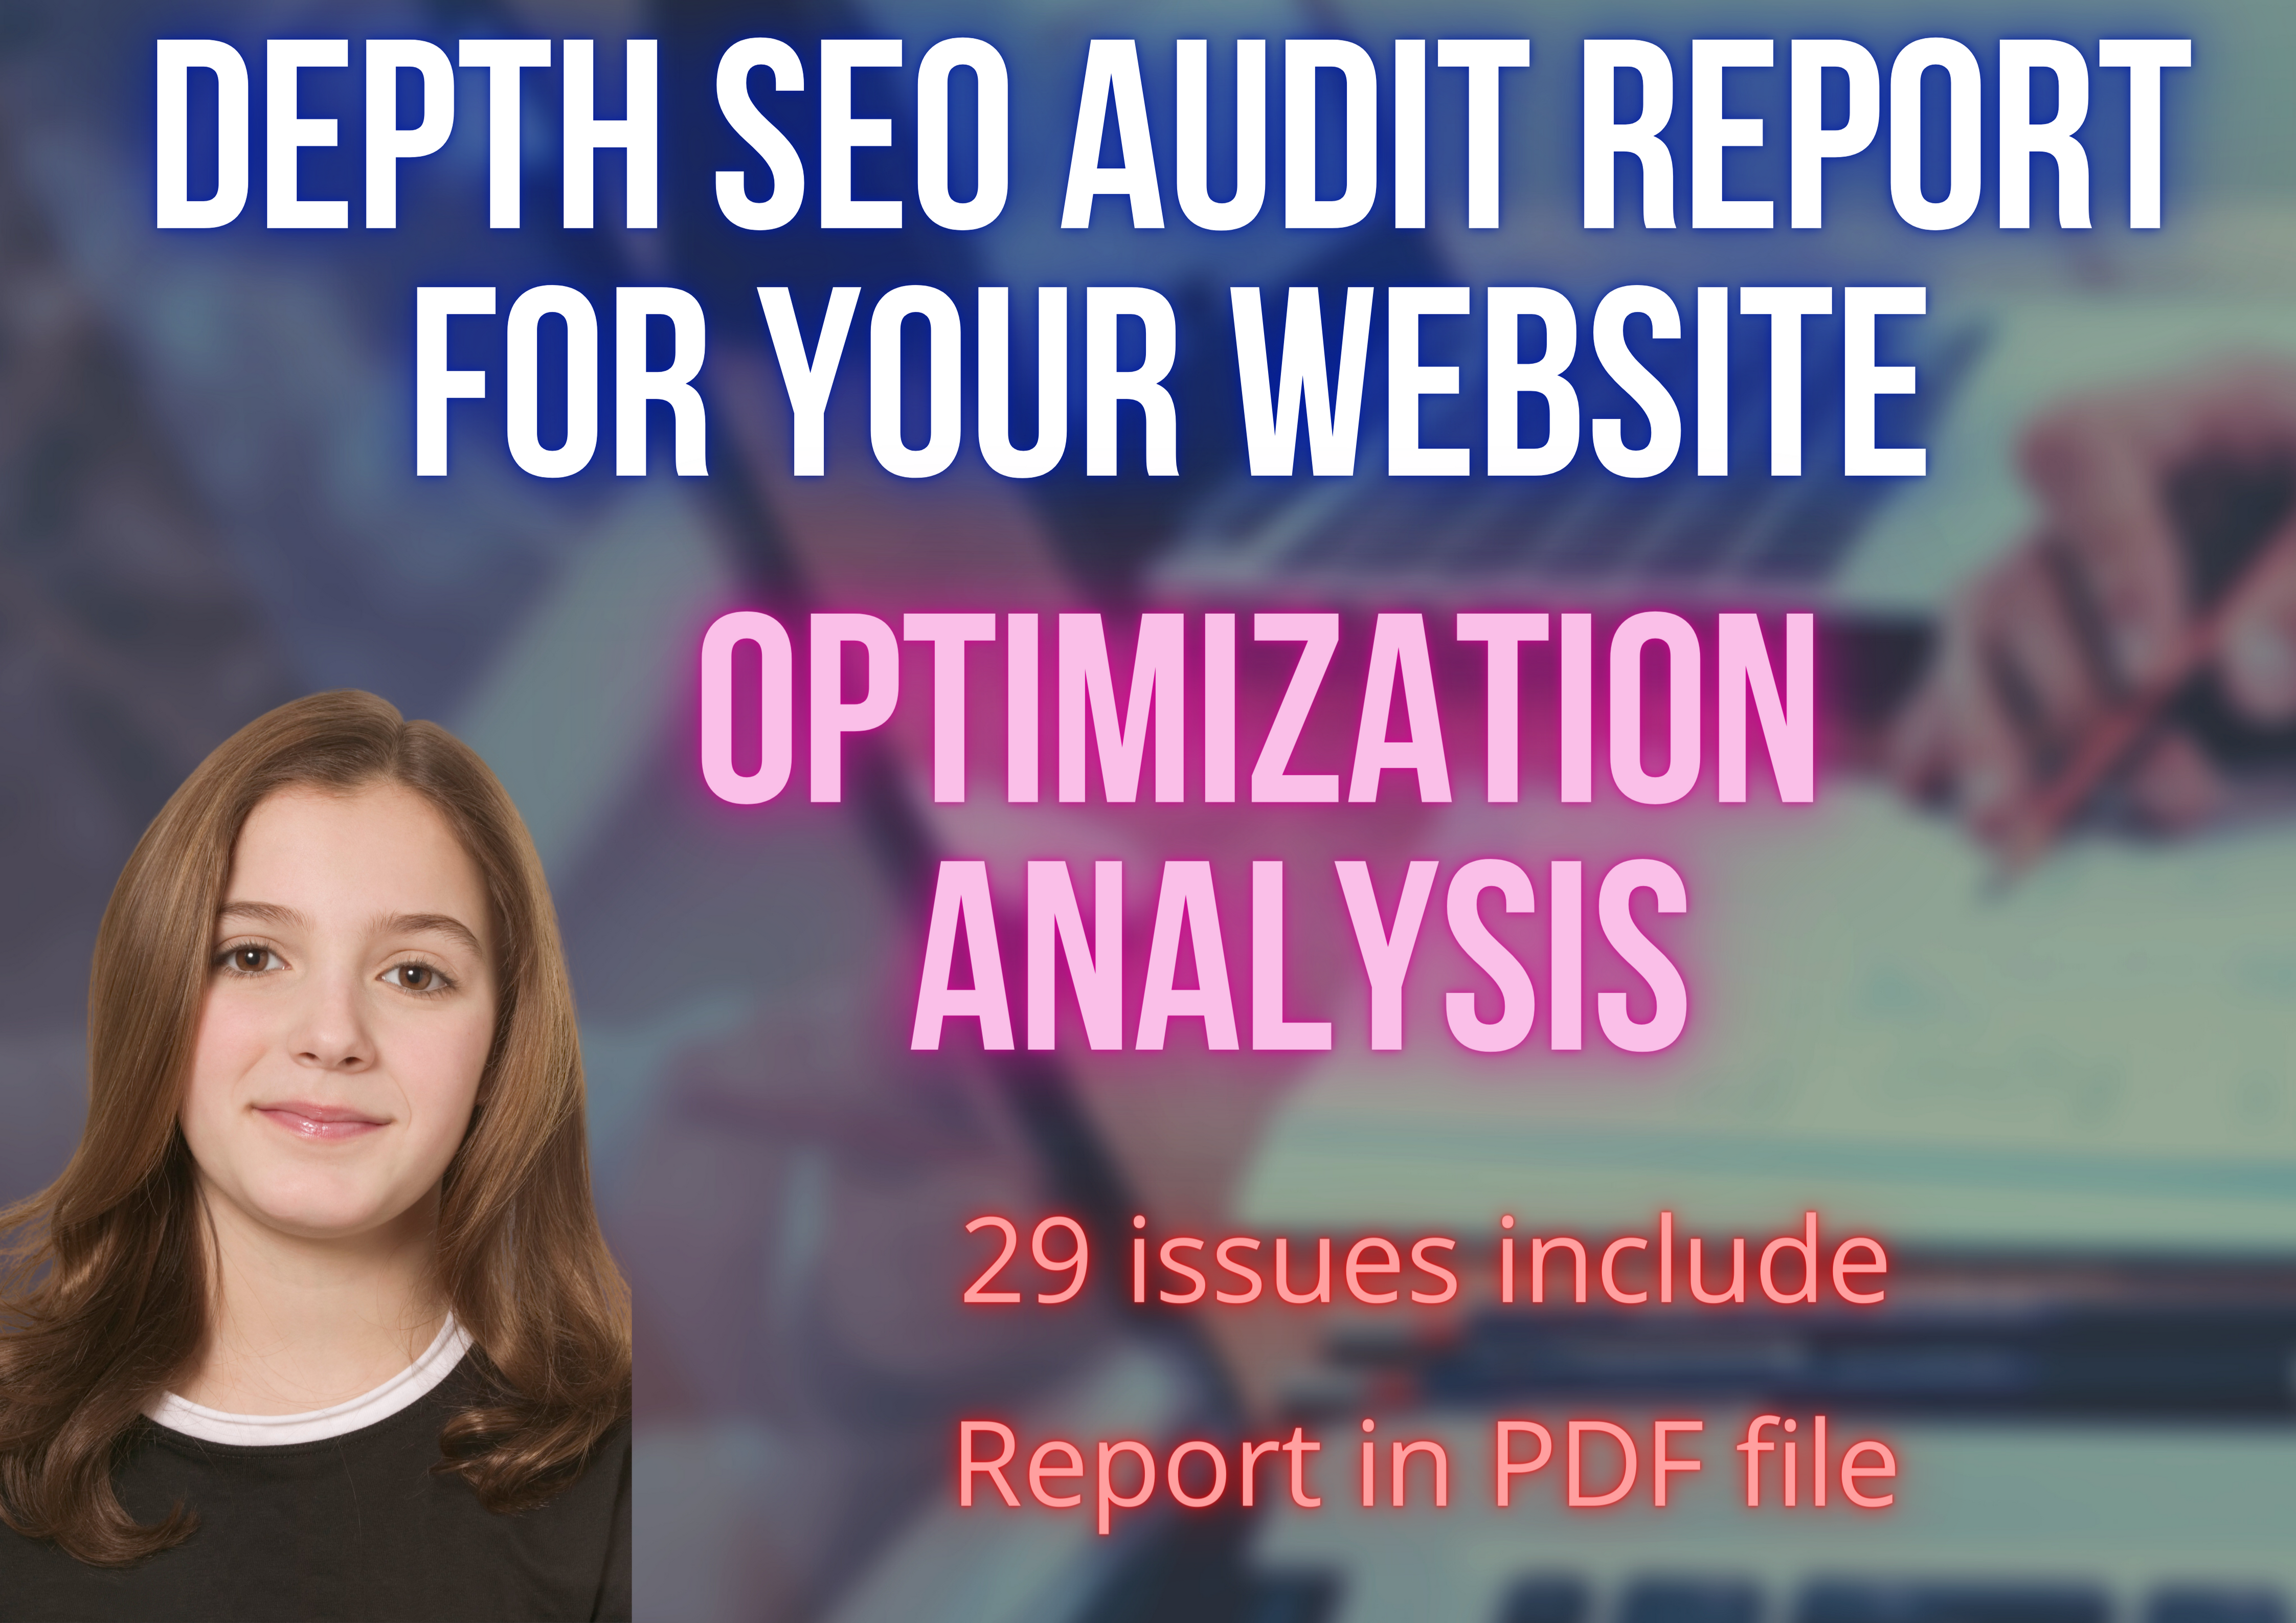 I will provide a Depth Audit SEO report for your Website